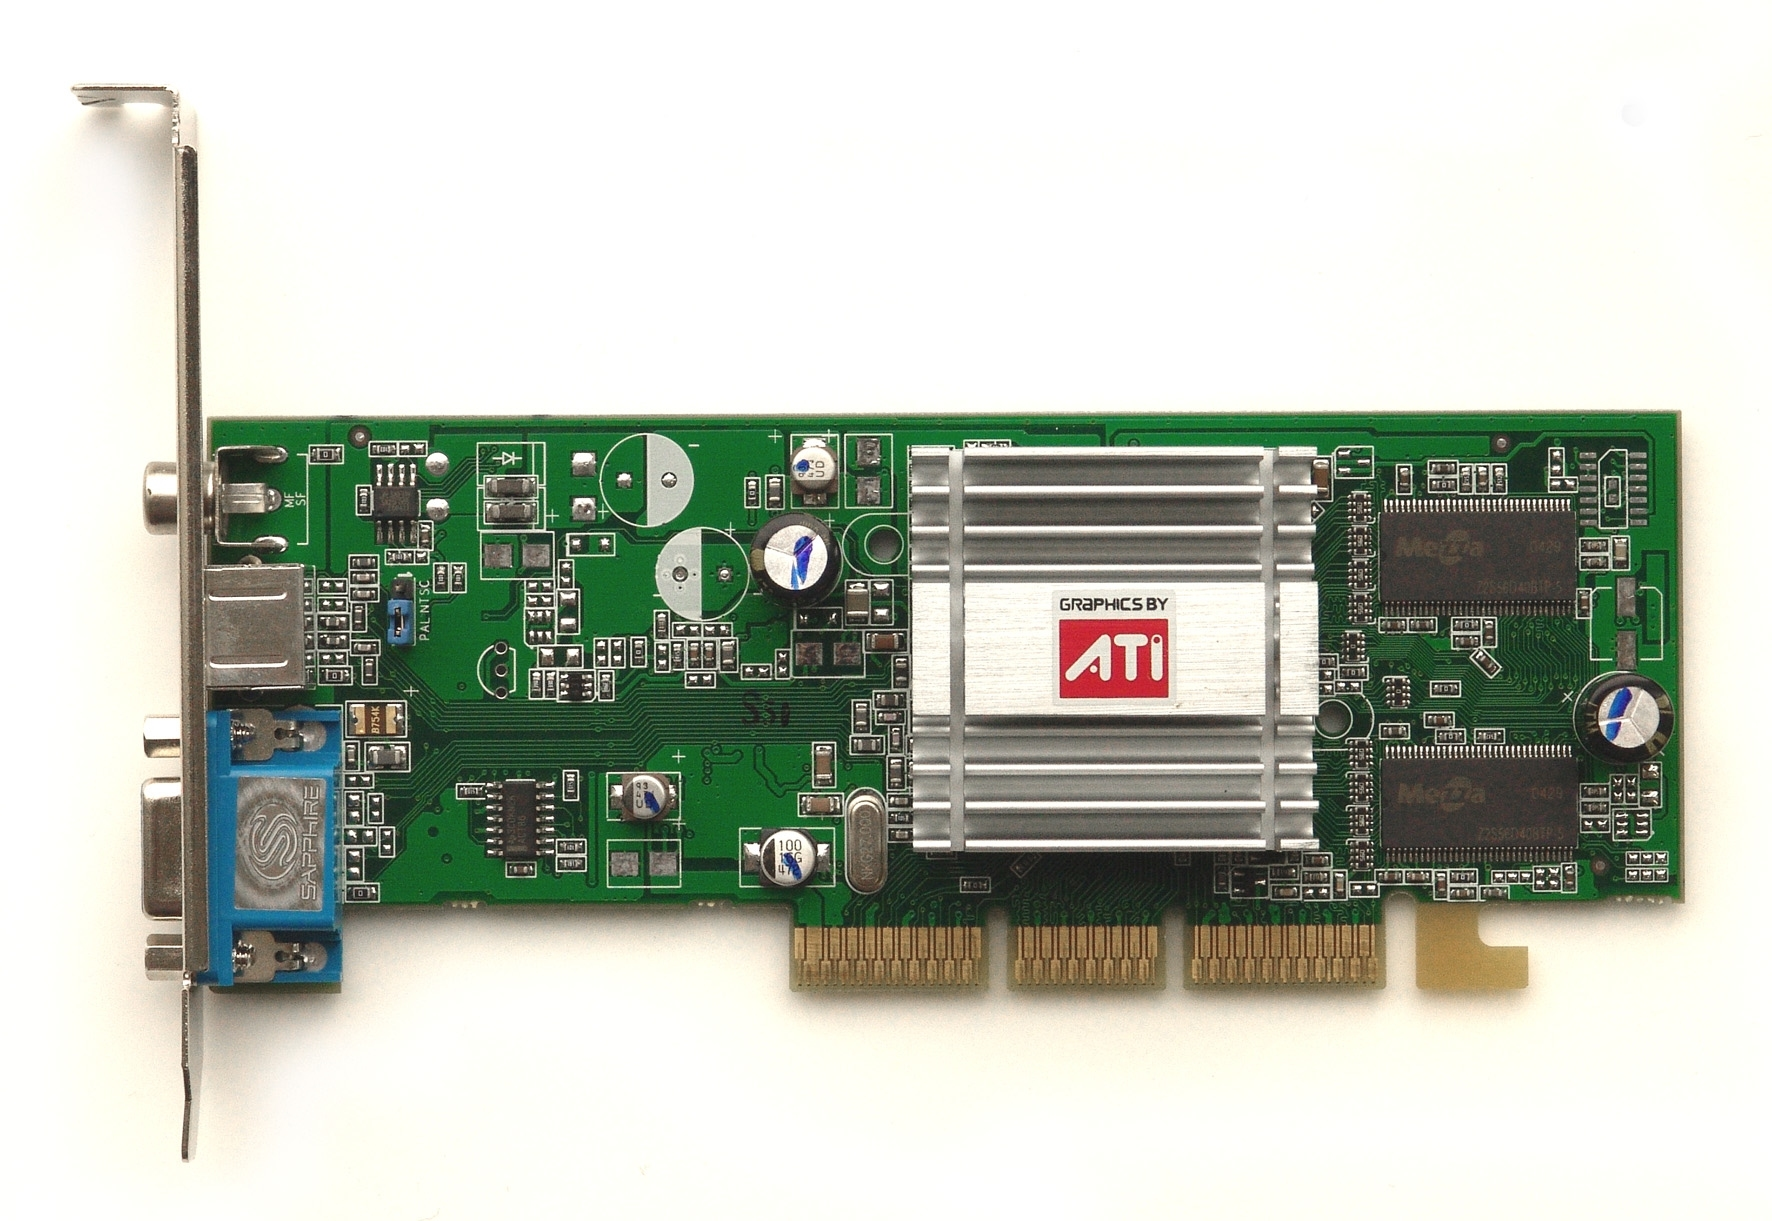 ATI 3DP ASUS EXTREME AX600XT-TD DRIVERS WINDOWS 7 (2019)